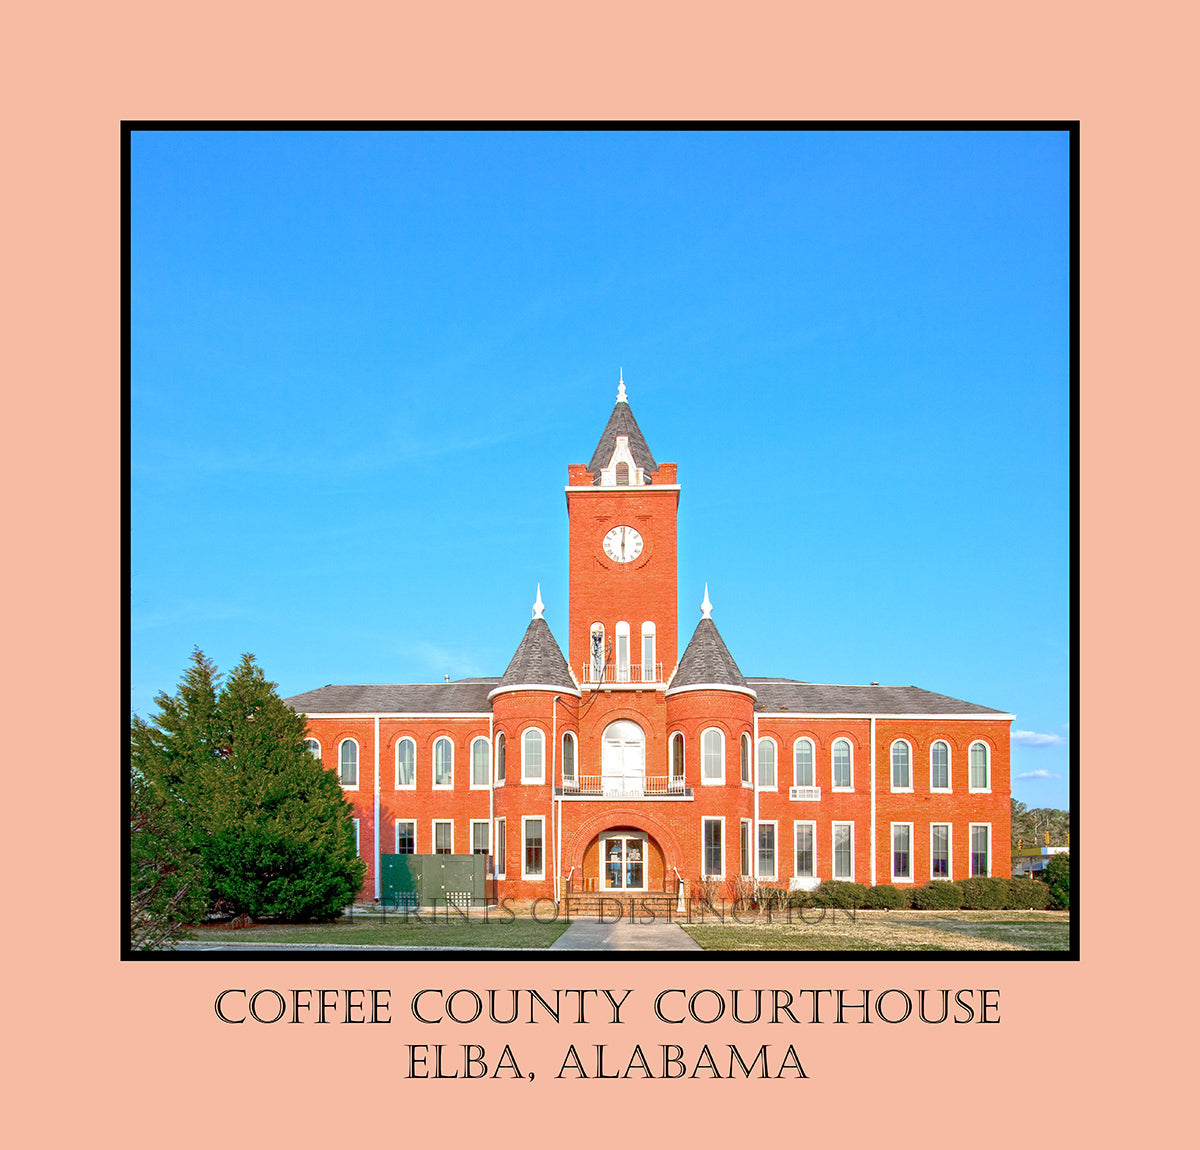 Coffee County Courthouse in Elba, Alabama Poster